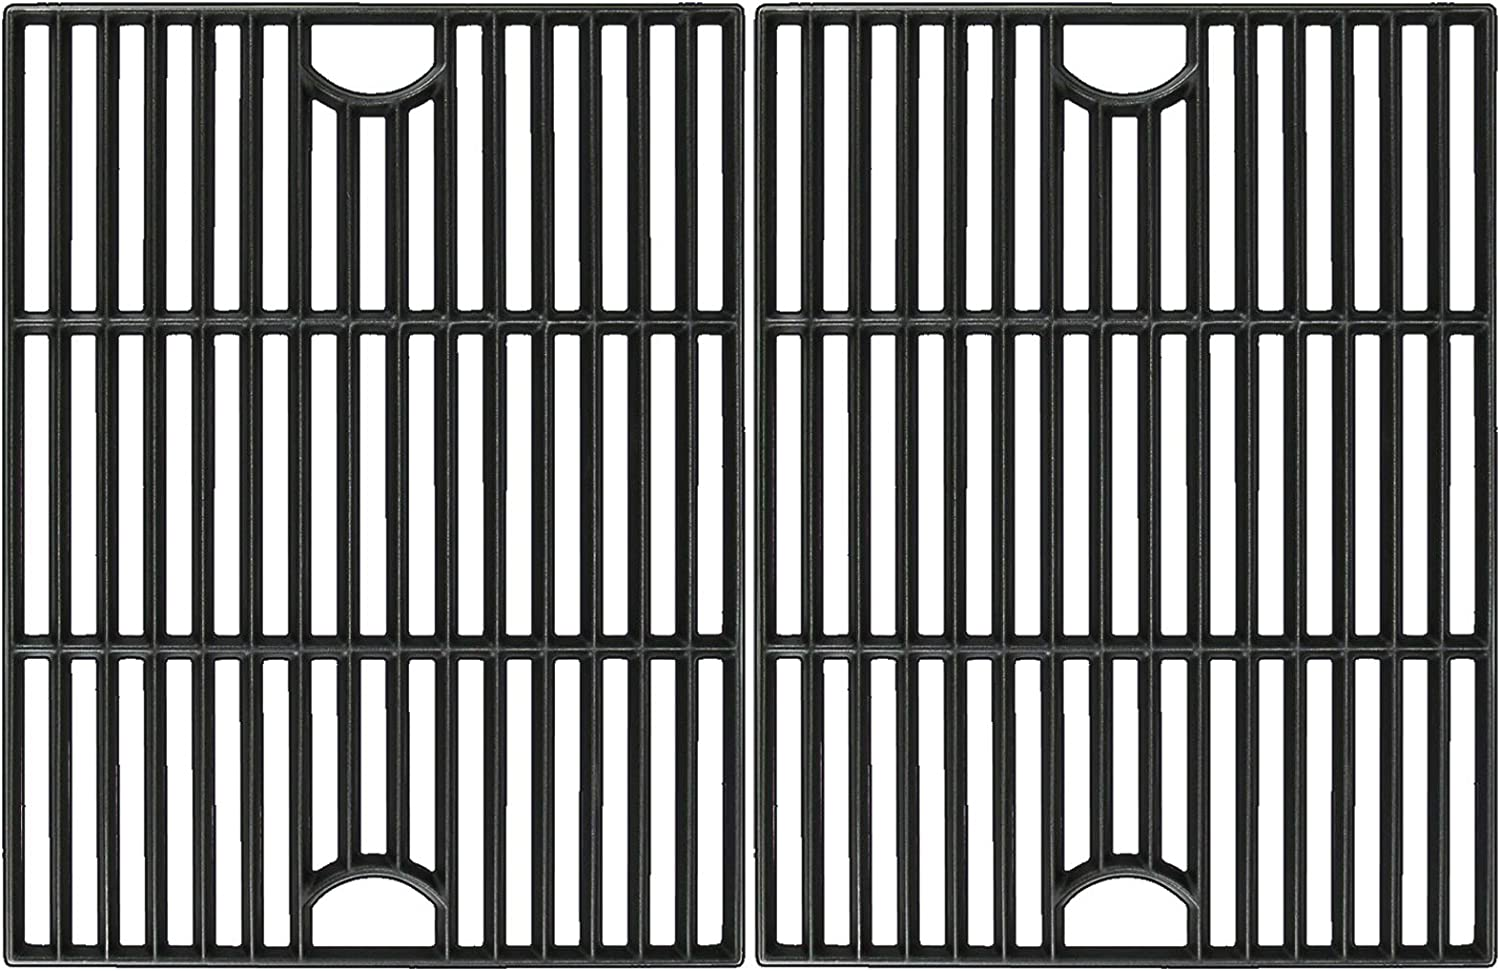 Utheer 17 Inch Cooking Grid Grate for Nexgrill 4 Burner 720-0830H, 5 Burner 720-0888 720-0888N 720-0888S, 720-0697, 720-0783E, Kenmore 720-0670A, Members Mark, Uniflame Grill Replacement Parts, 2 PCS